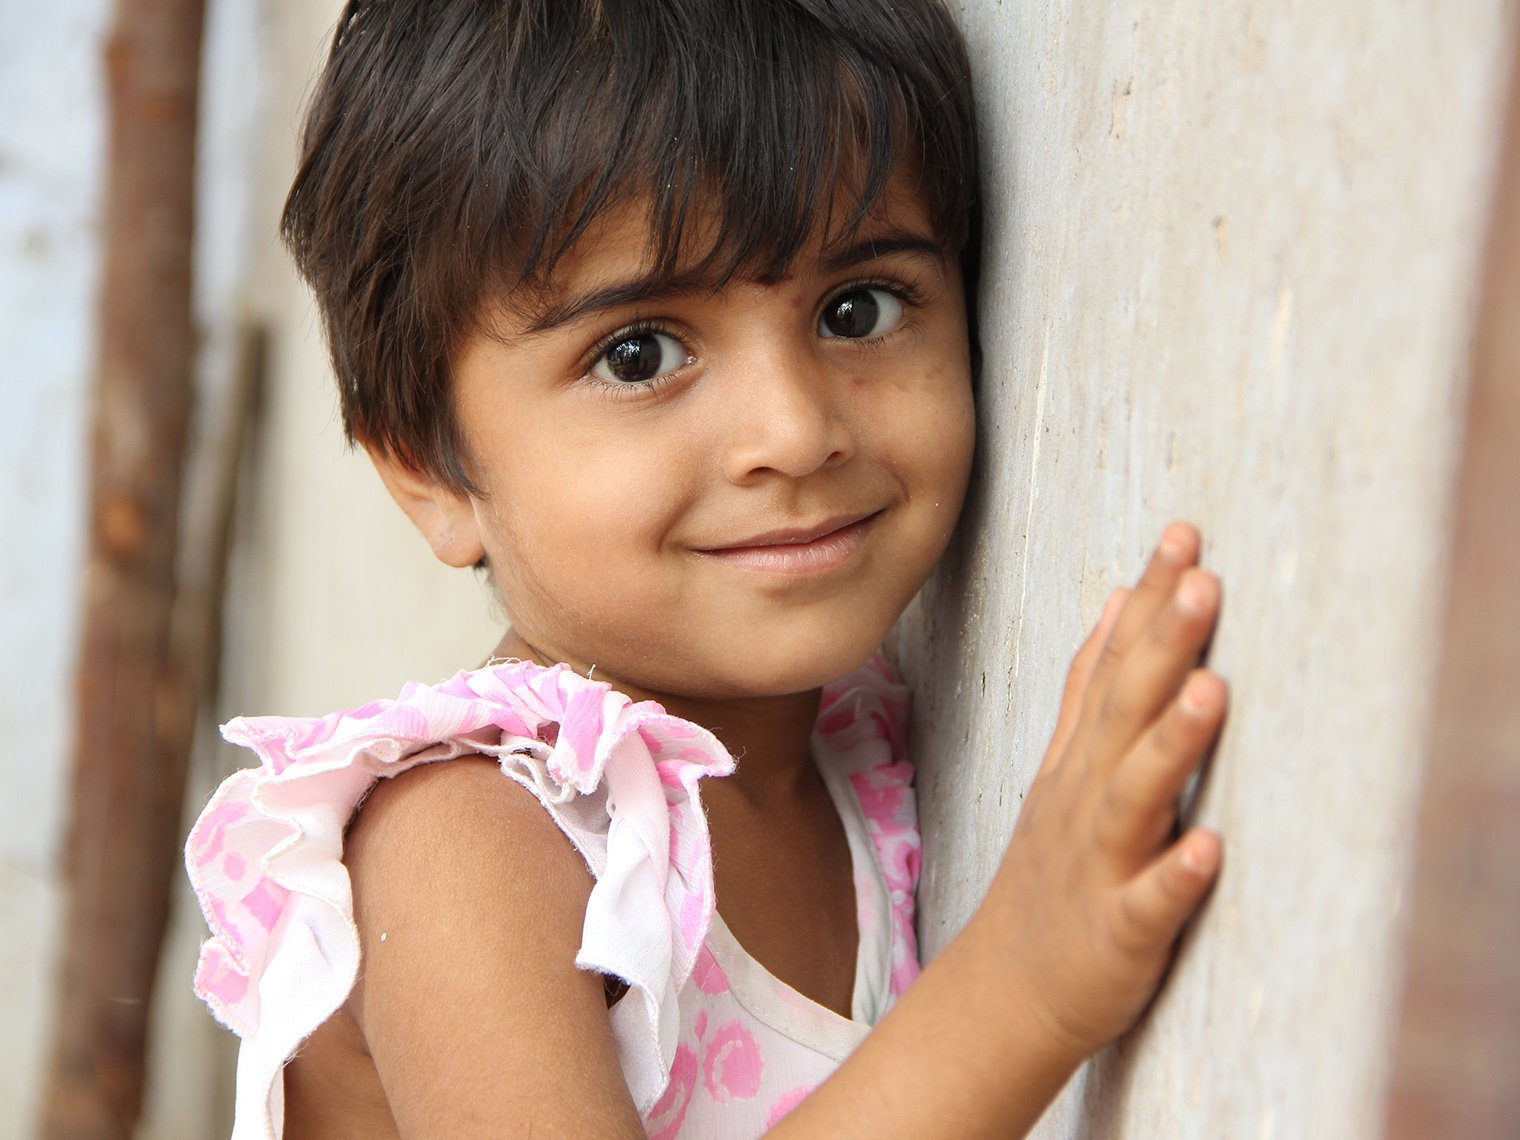 Children poverty - Egyptian Cotton - My Cotton Dream Charity